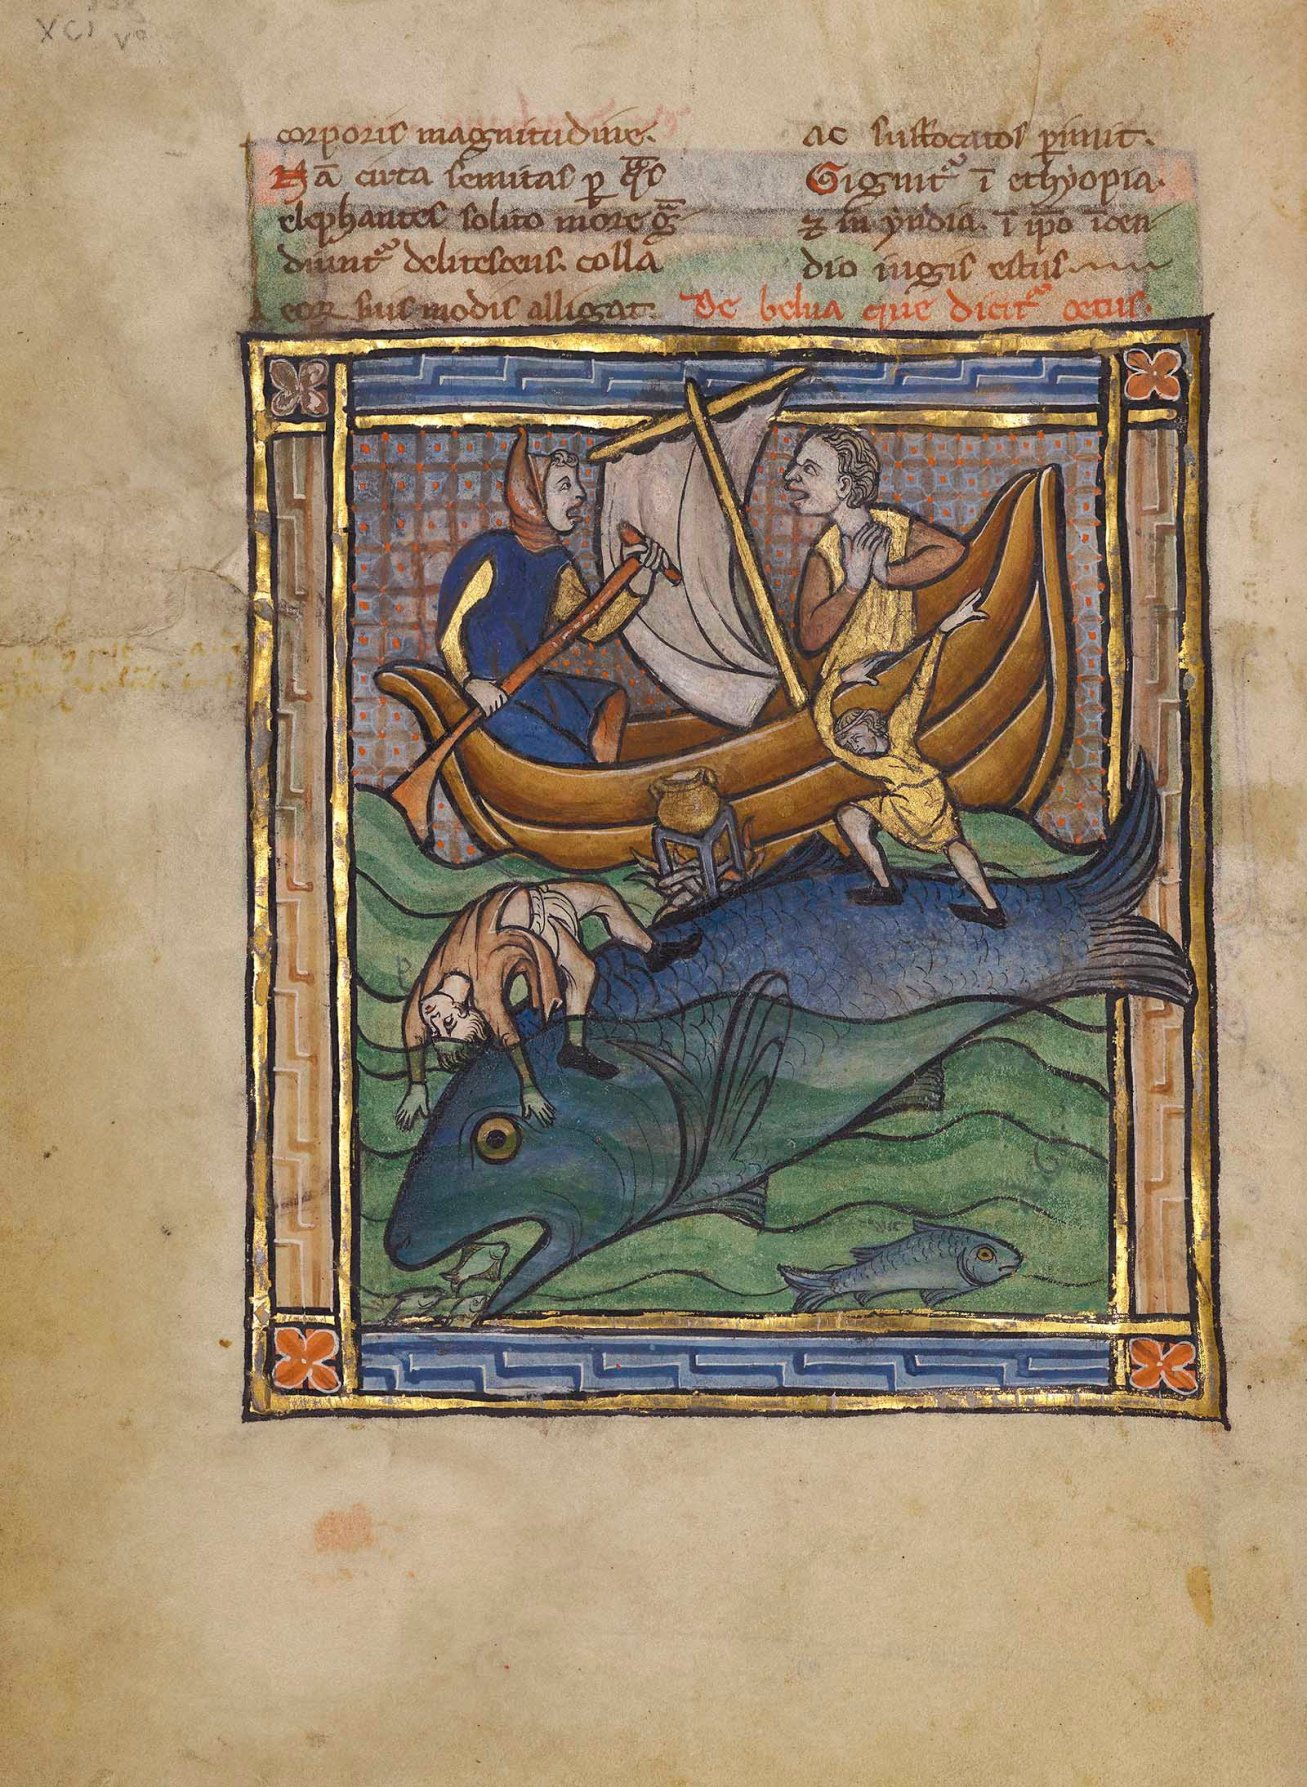 Two Fishermen on an Aspidochelone in a bestiary, about 1270, unknown illuminator, possibly made in Thérouanne, France. Tempera colors, gold leaf, and ink on parchment, 7 1/2 × 5 5/8 in. The J. Paul Getty Museum, Ms. Ludwig XV 3, fol. 89v. Digital image courtesy of the Getty's Open Content Program